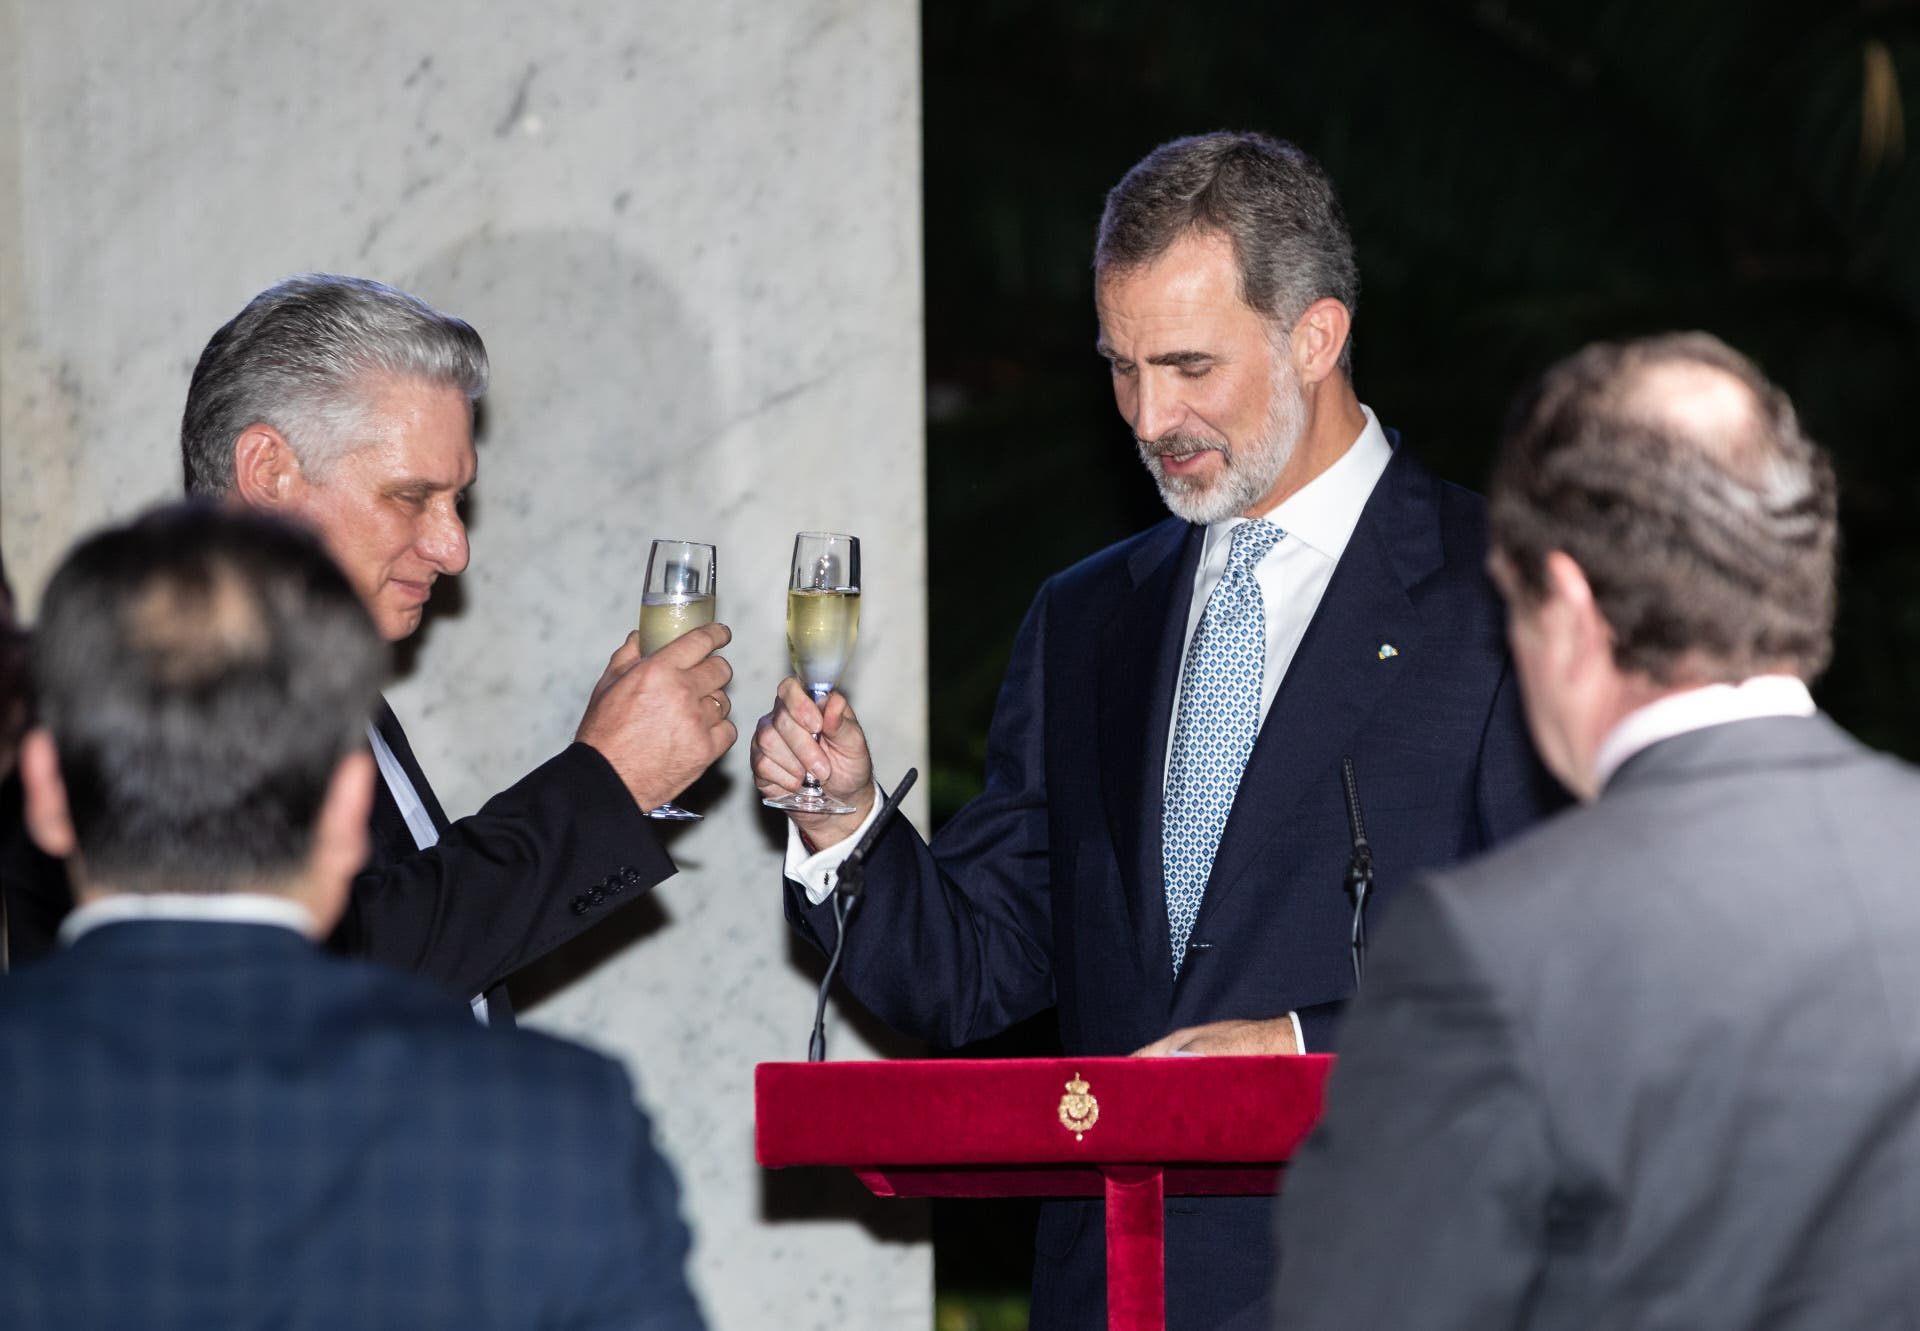 Felipe VI y Letizia se separan: ella vuelve a Madrid y él se va a Washington de 'universiparty'